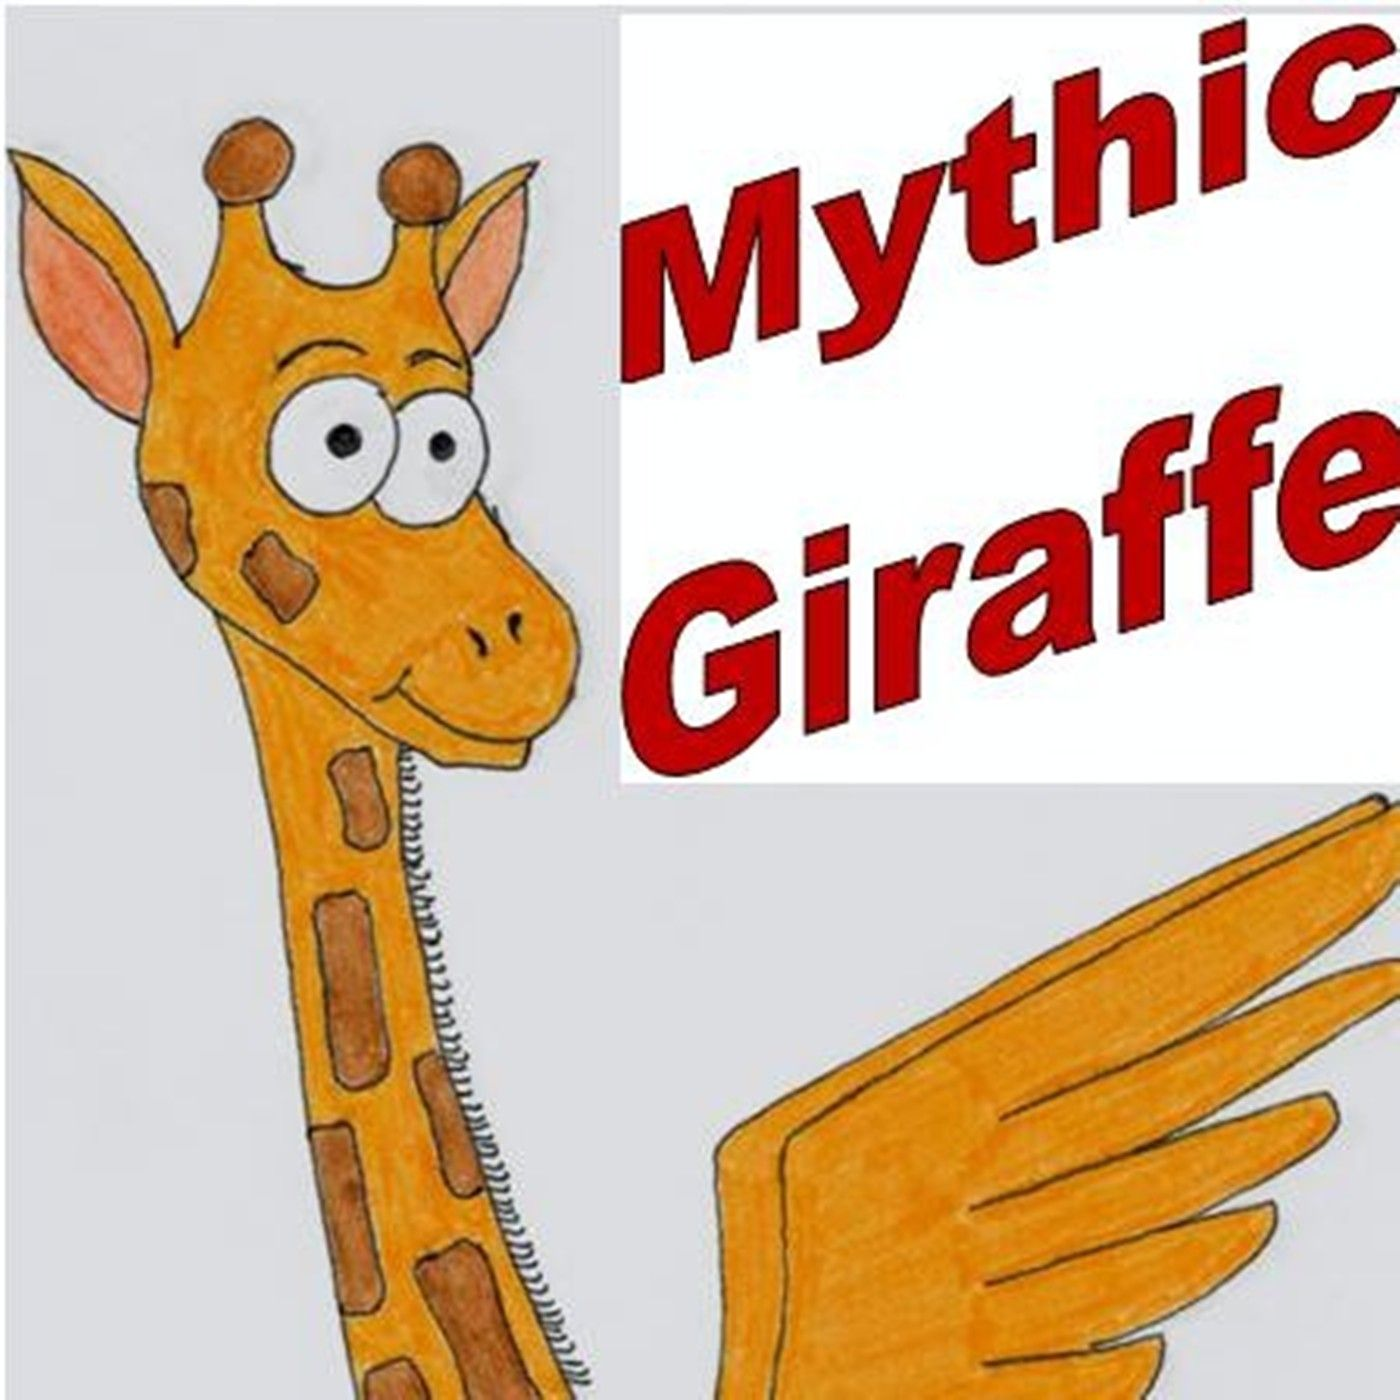 Mythic Giraffe Podcast